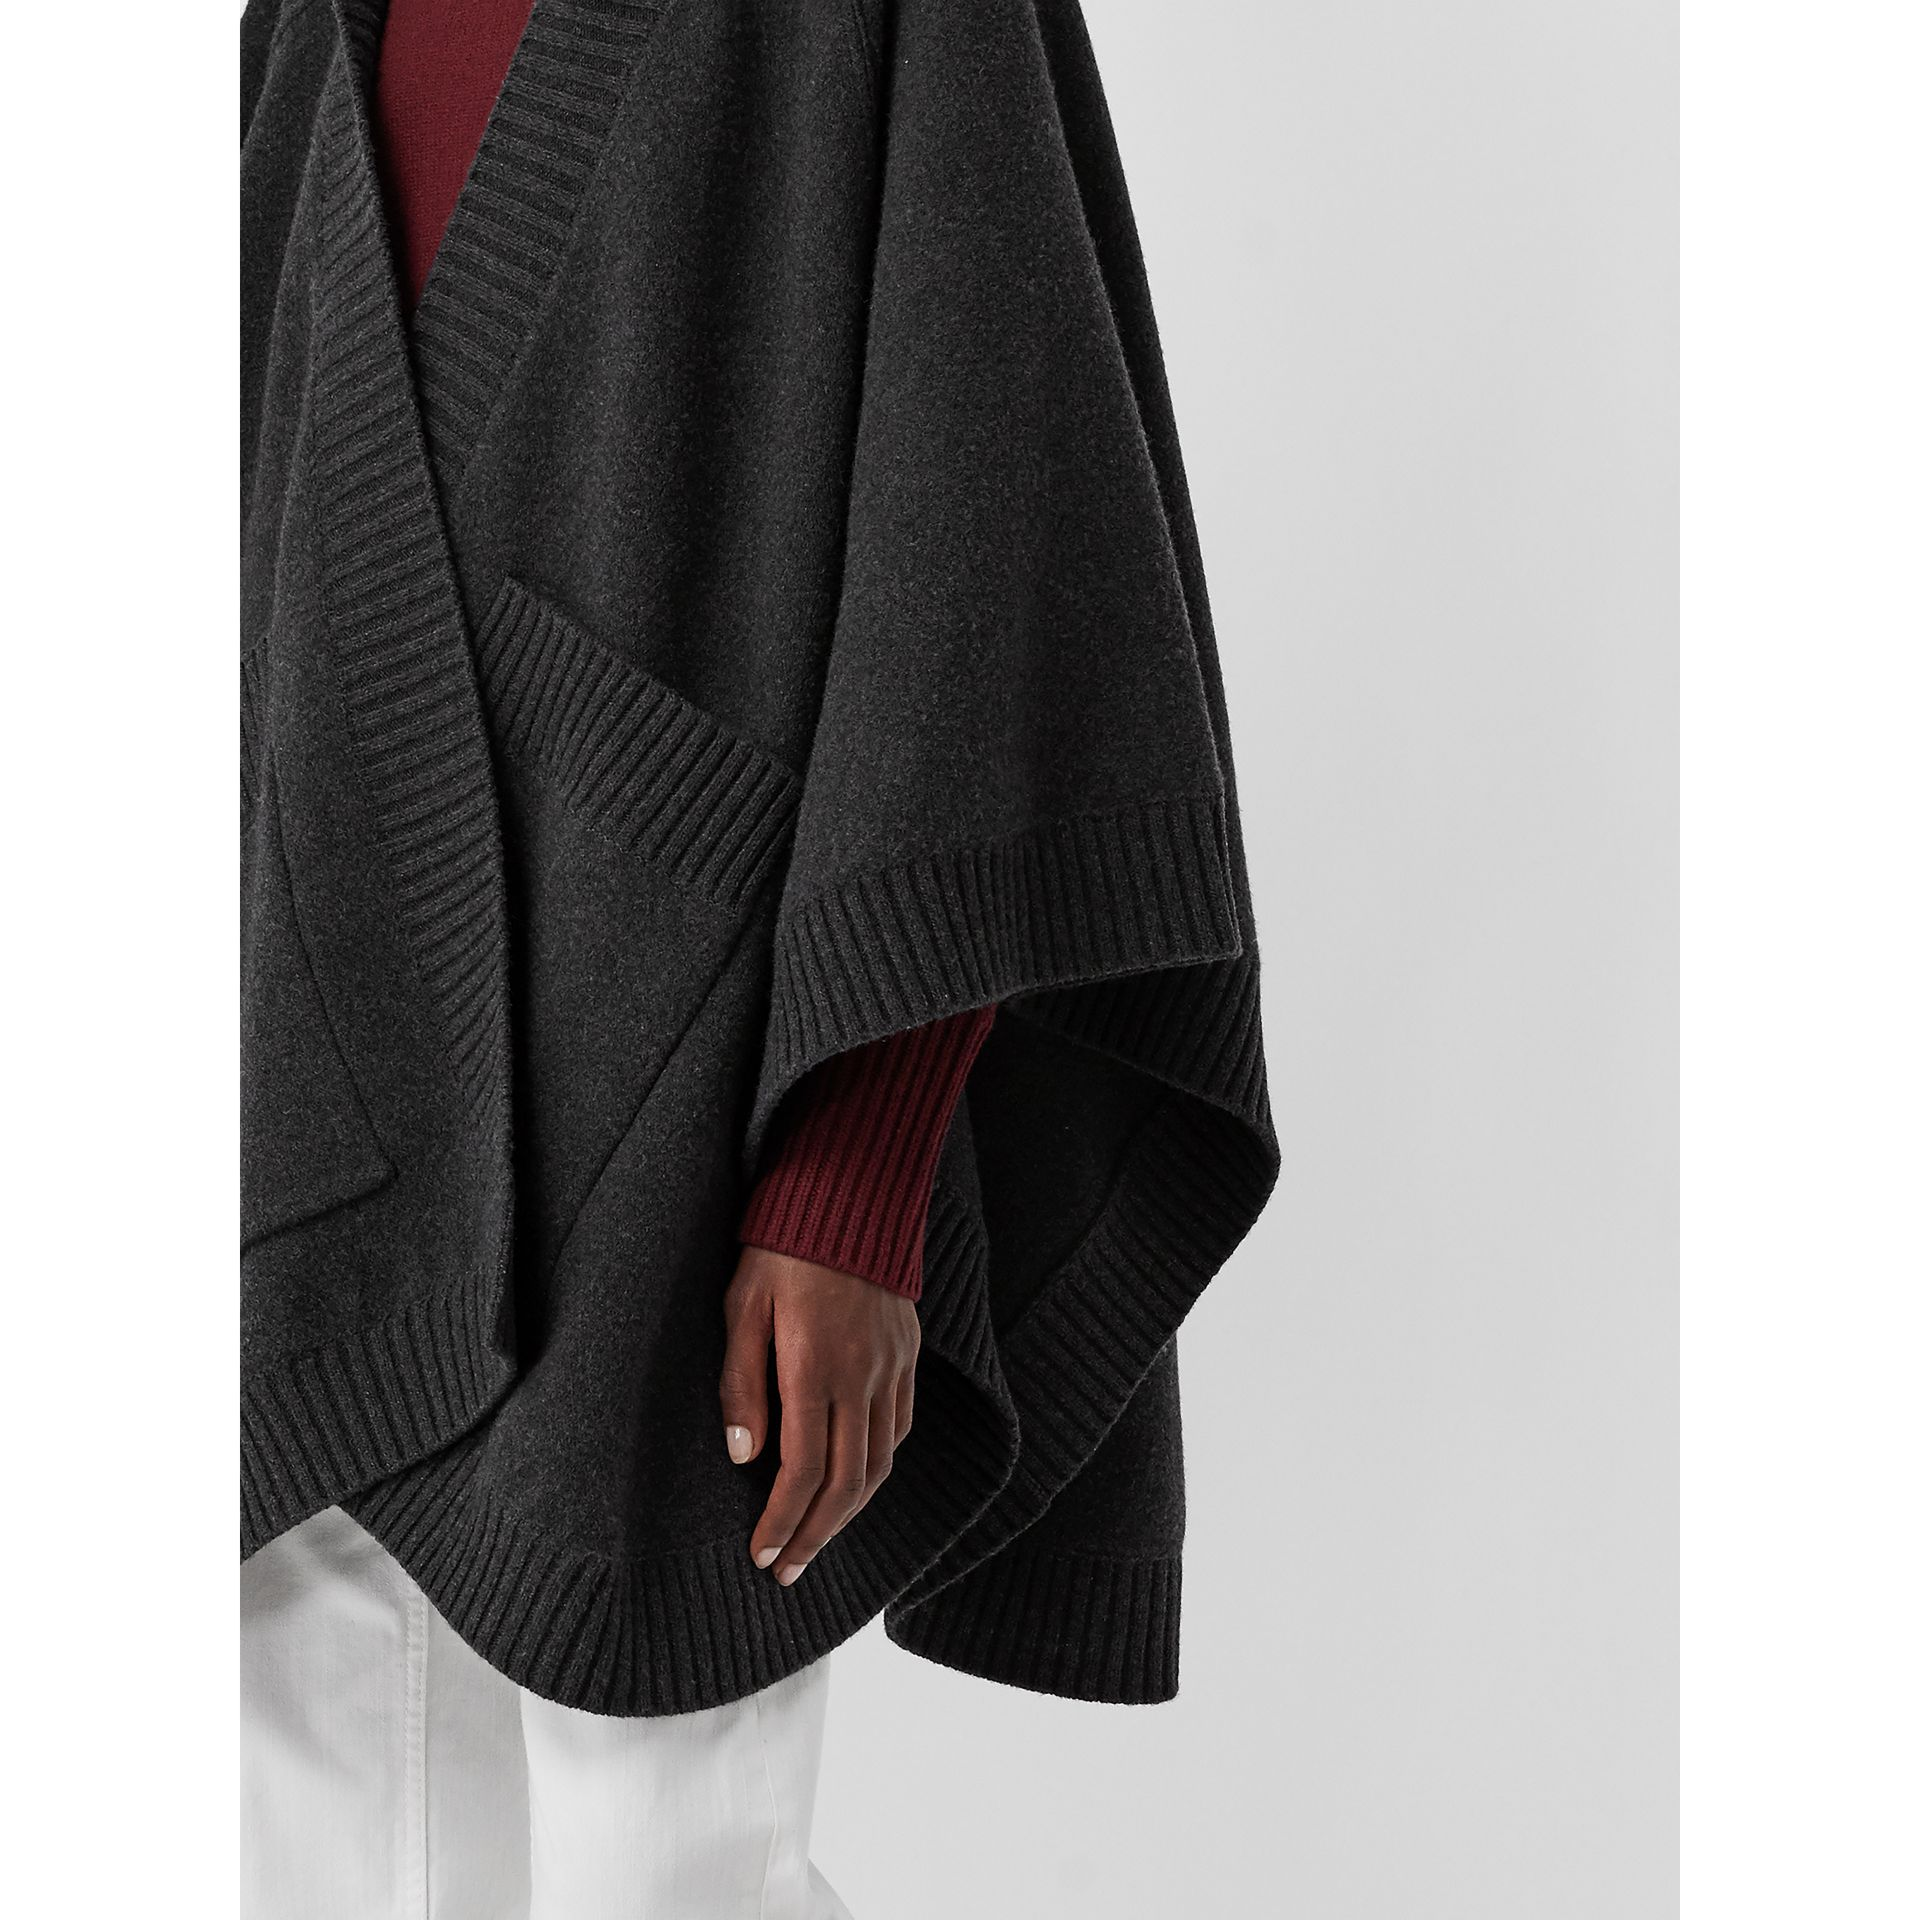 Crest Wool Blend Jacquard Hooded Cape in Charcoal - Women | Burberry Australia - gallery image 1